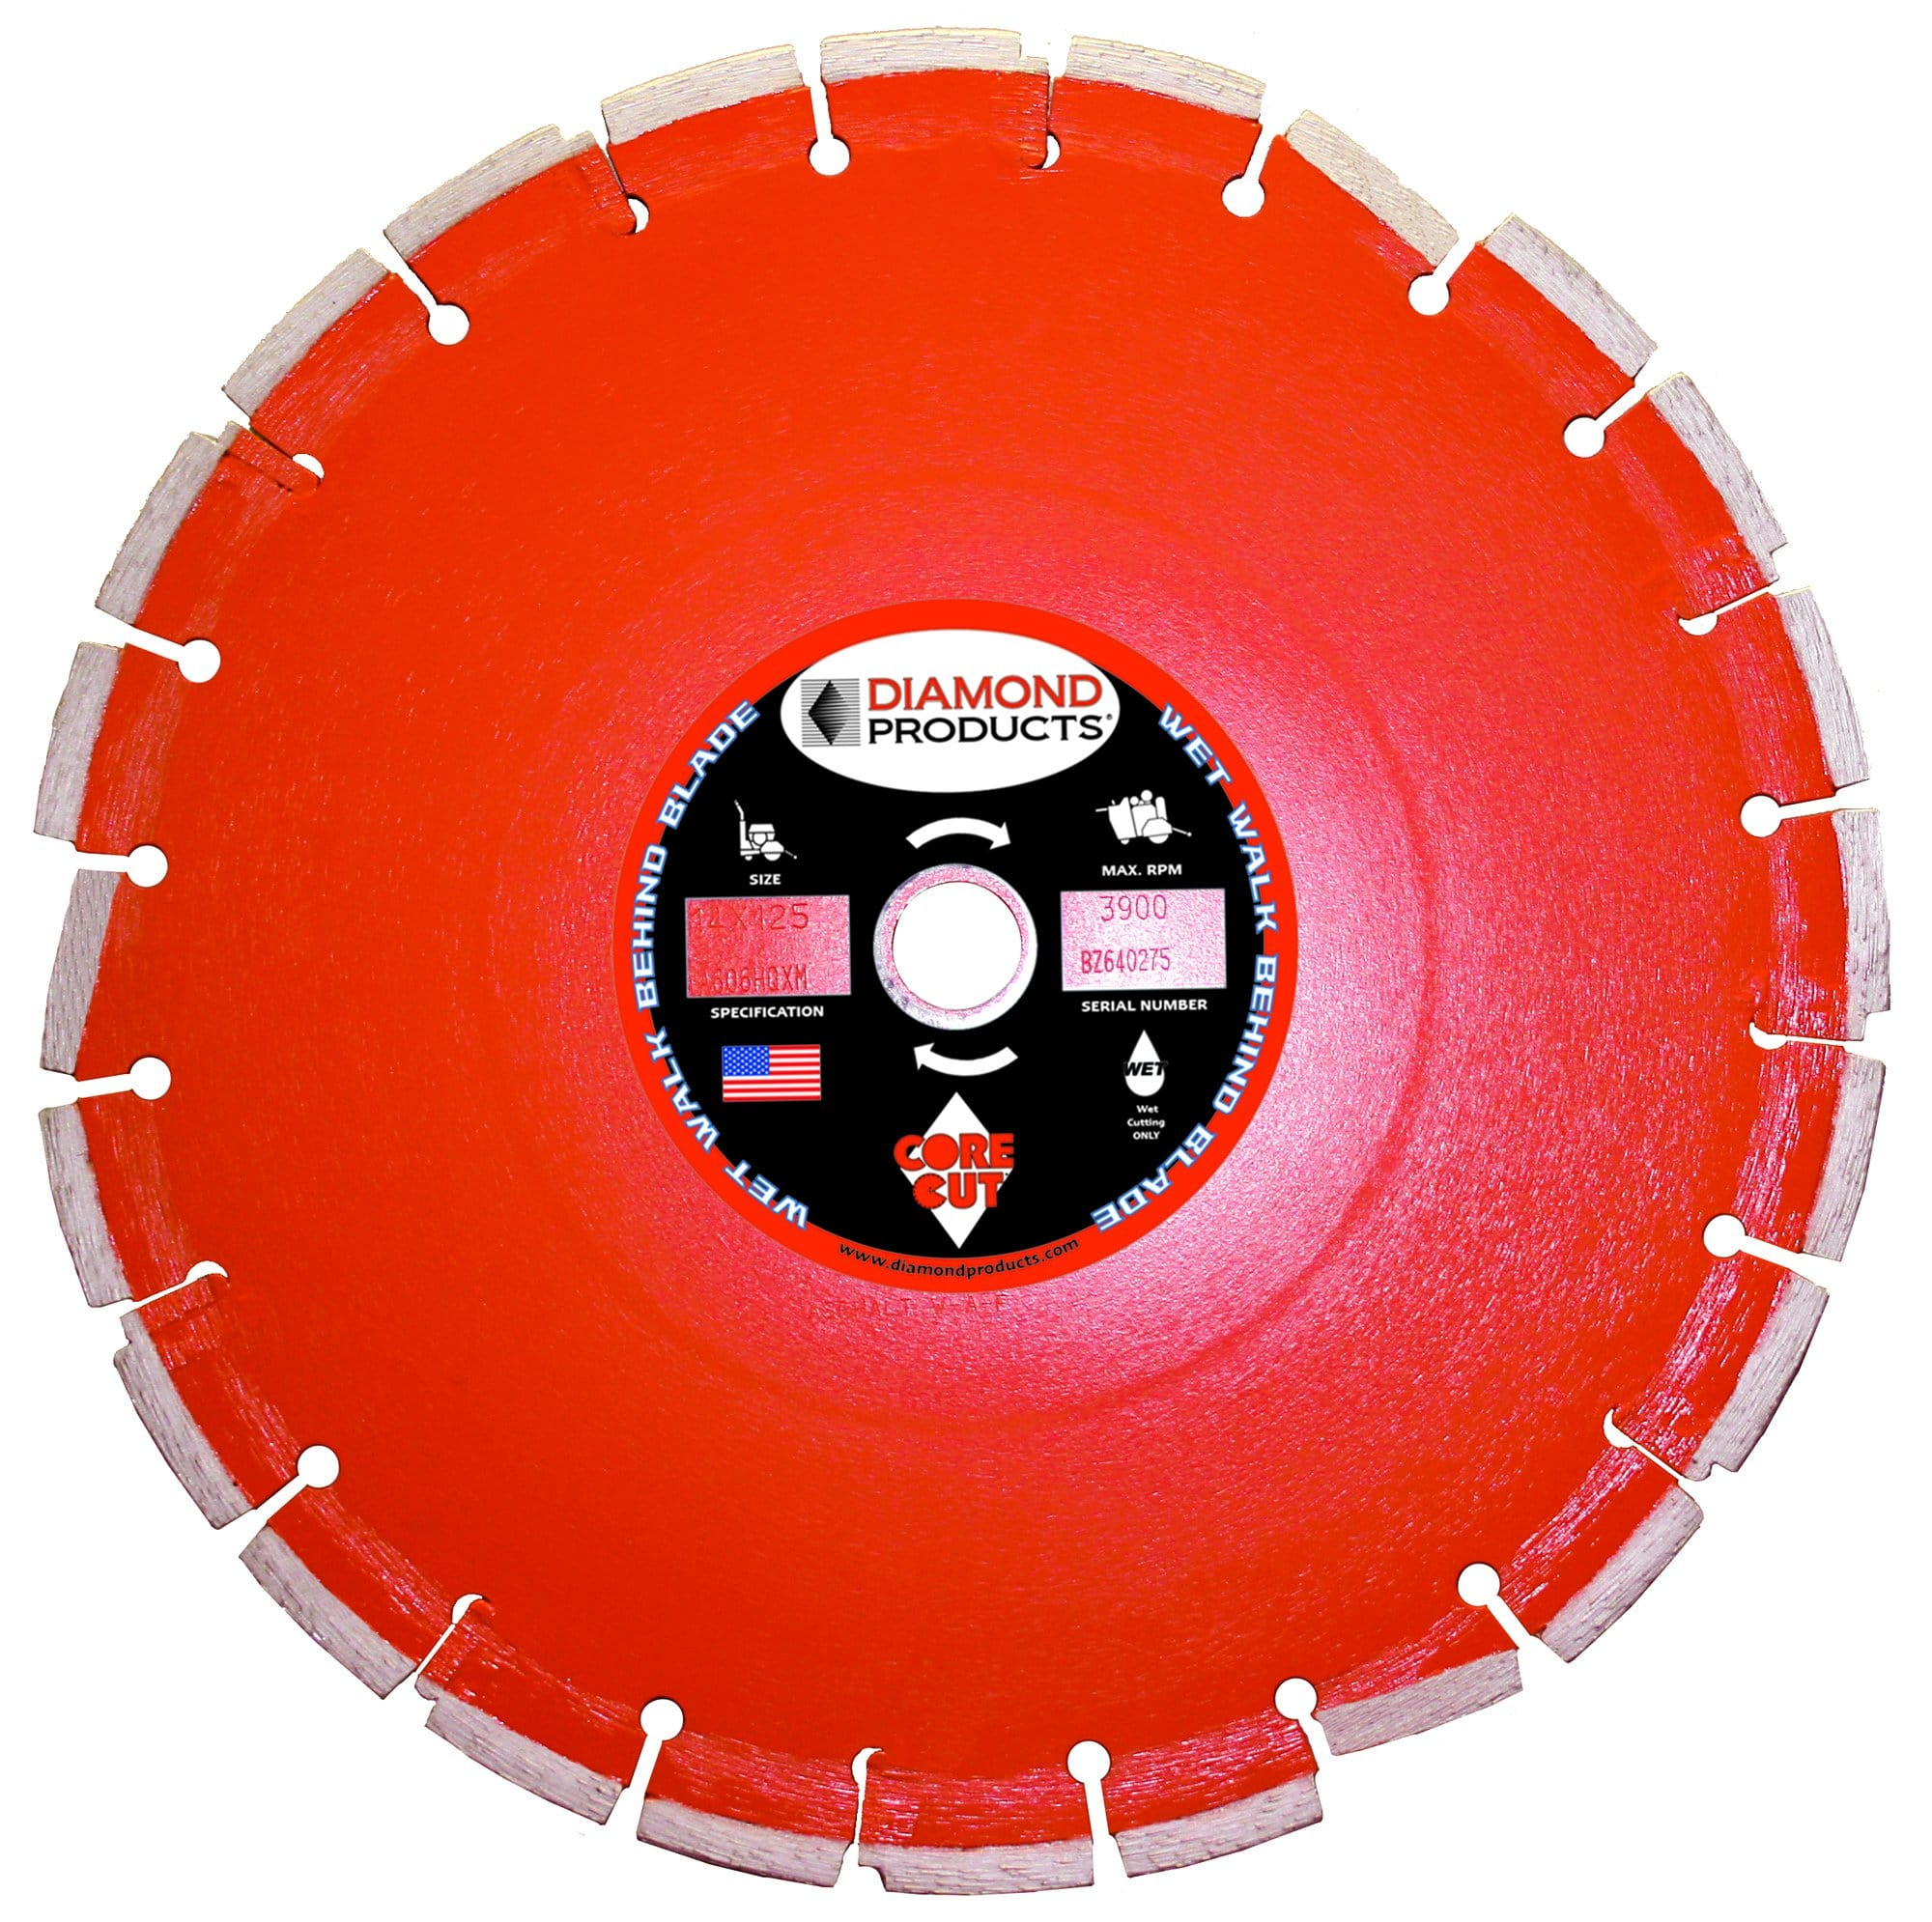 Heavy Duty Orange Cured Concrete Wet Diamond Blade